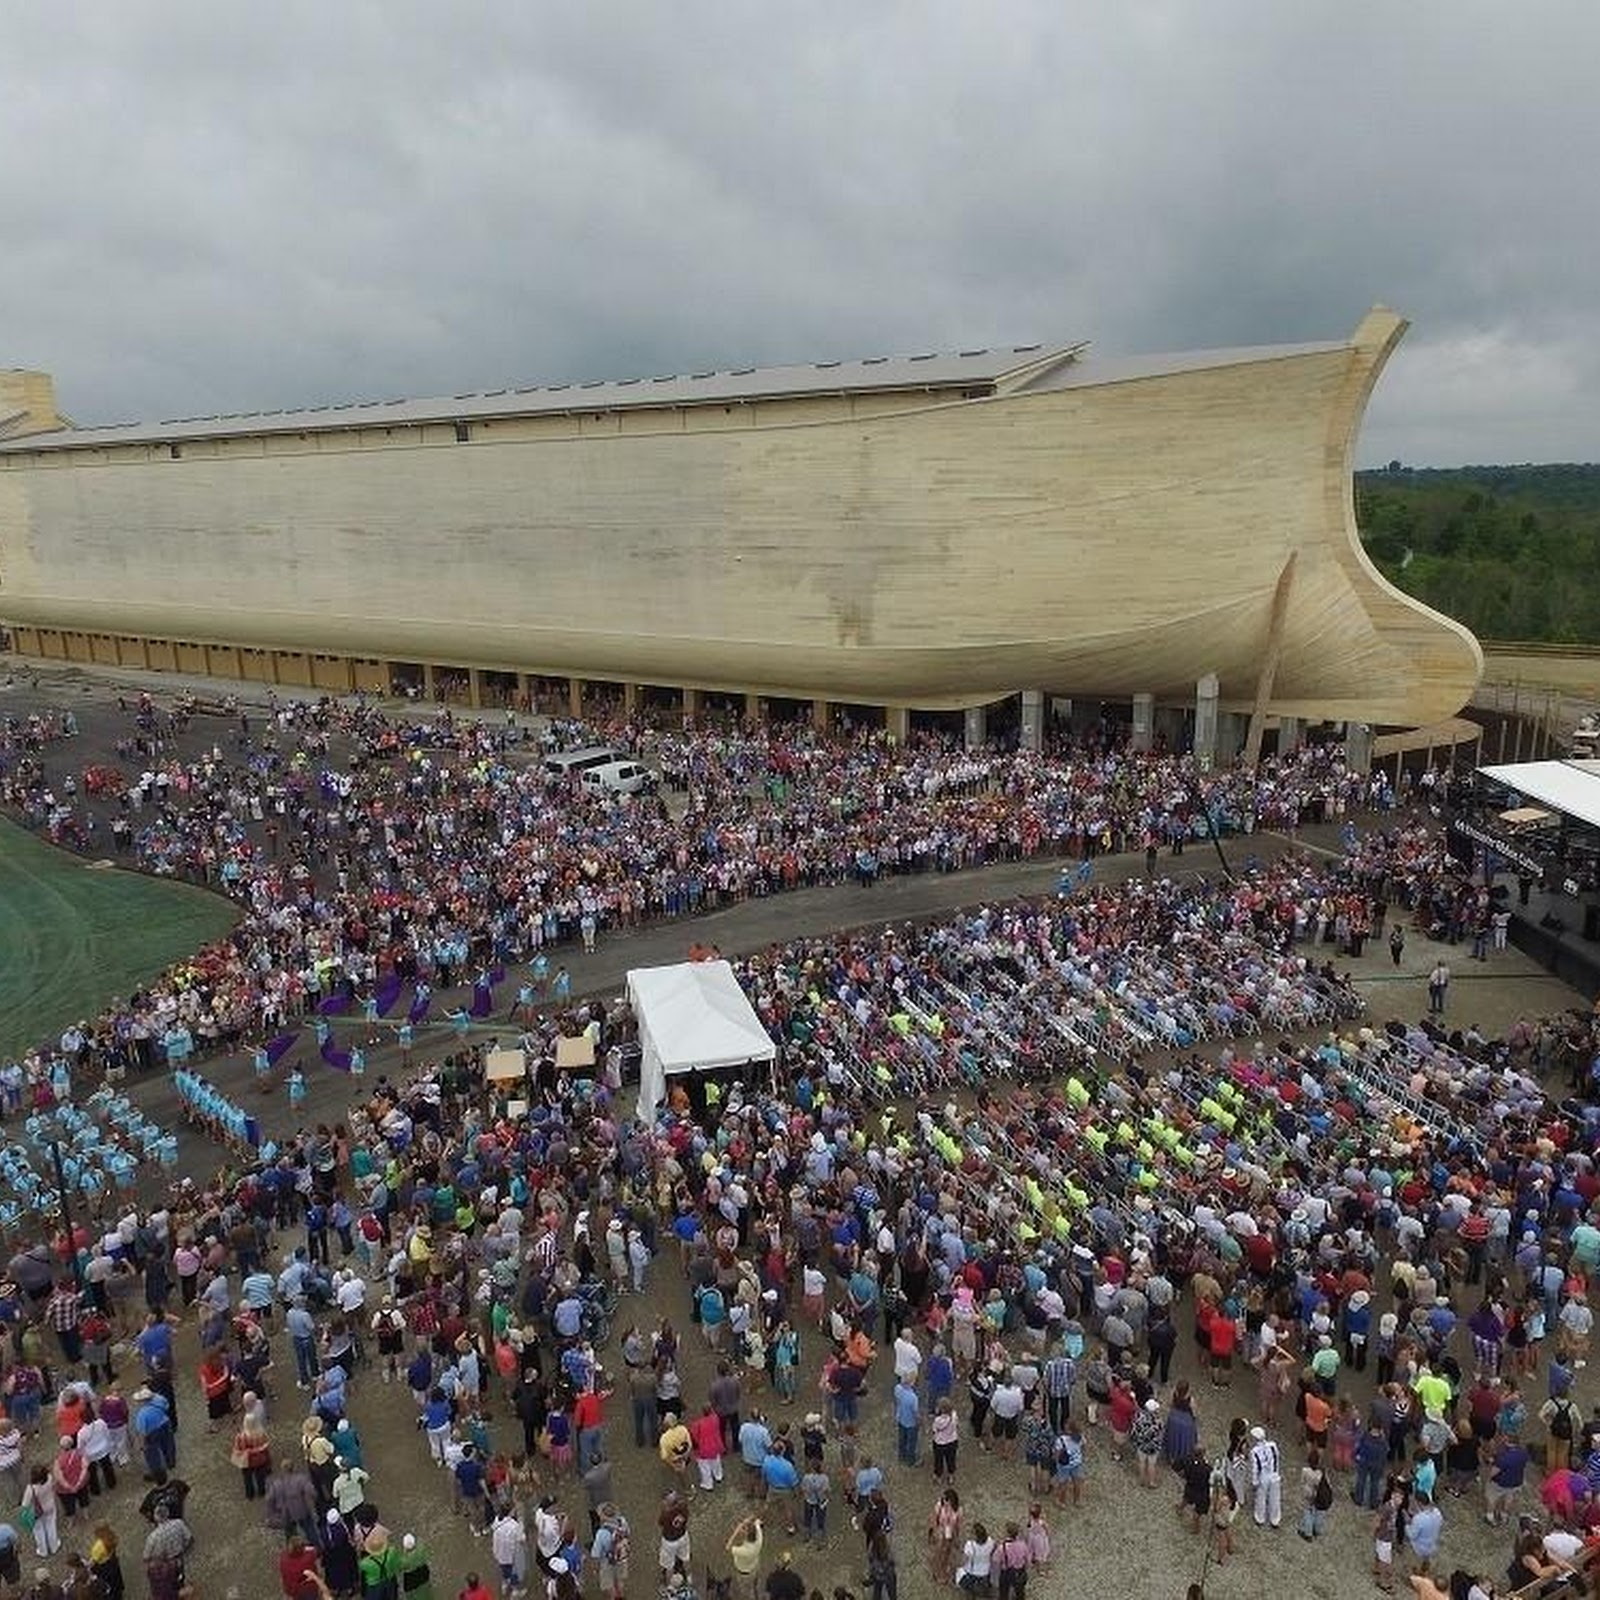 Life-Sized Noah's Ark at Theme Park in Kentucky